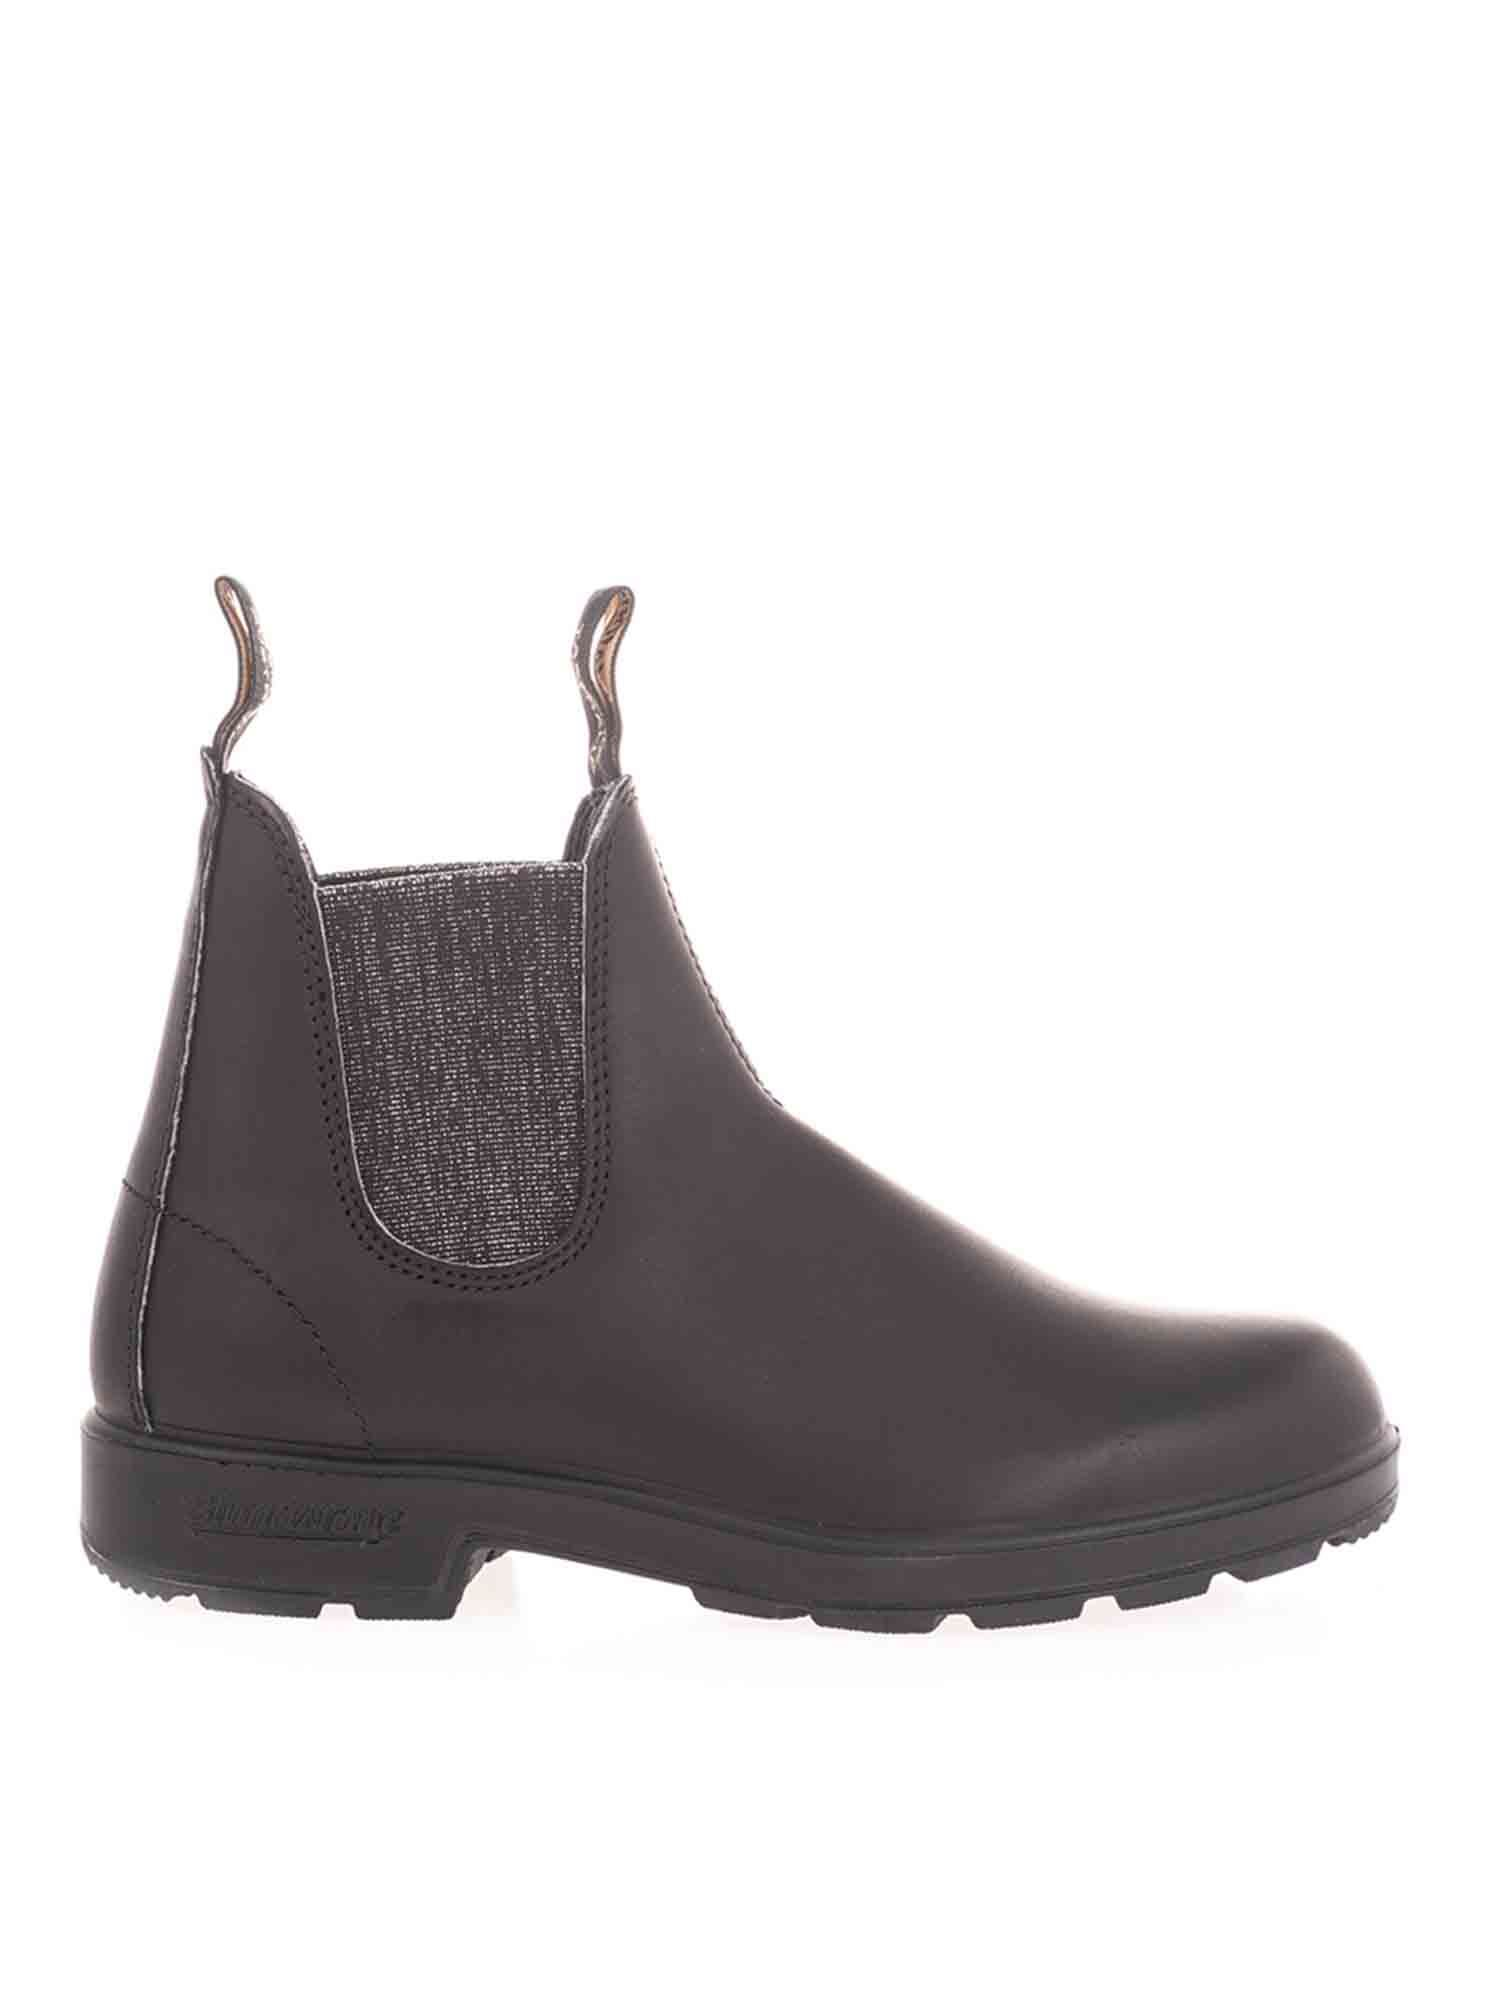 Blundstone ELASTICATED DETAILS ANKLE BOOTS IN BLACK